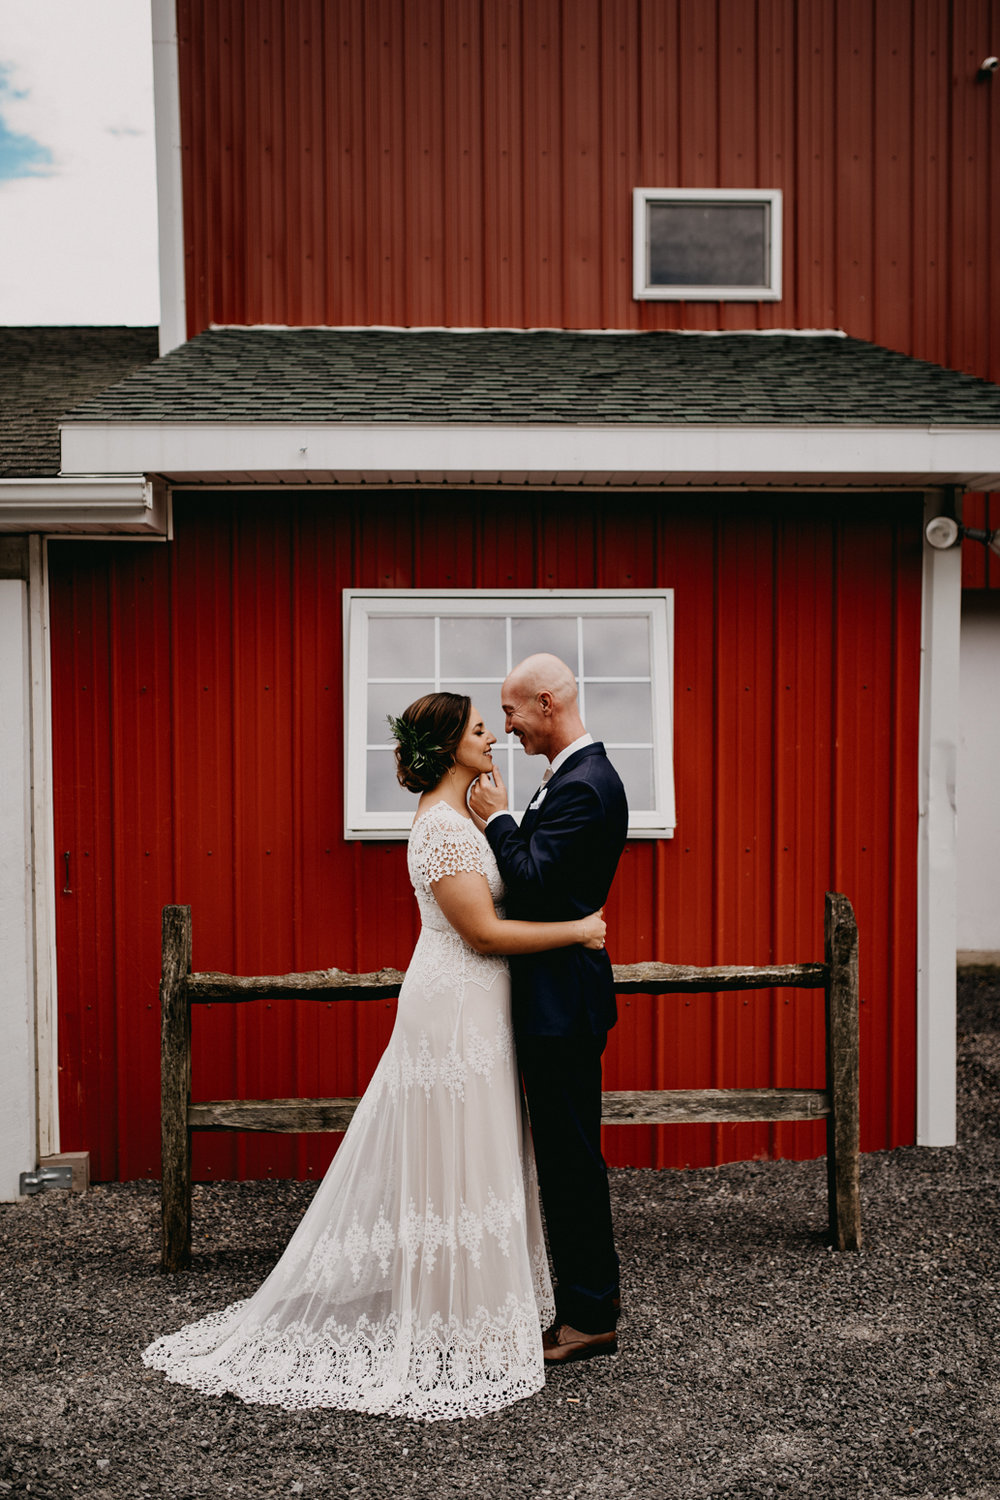 Rochester, NY Wedding Photographer (75 of 133).jpg